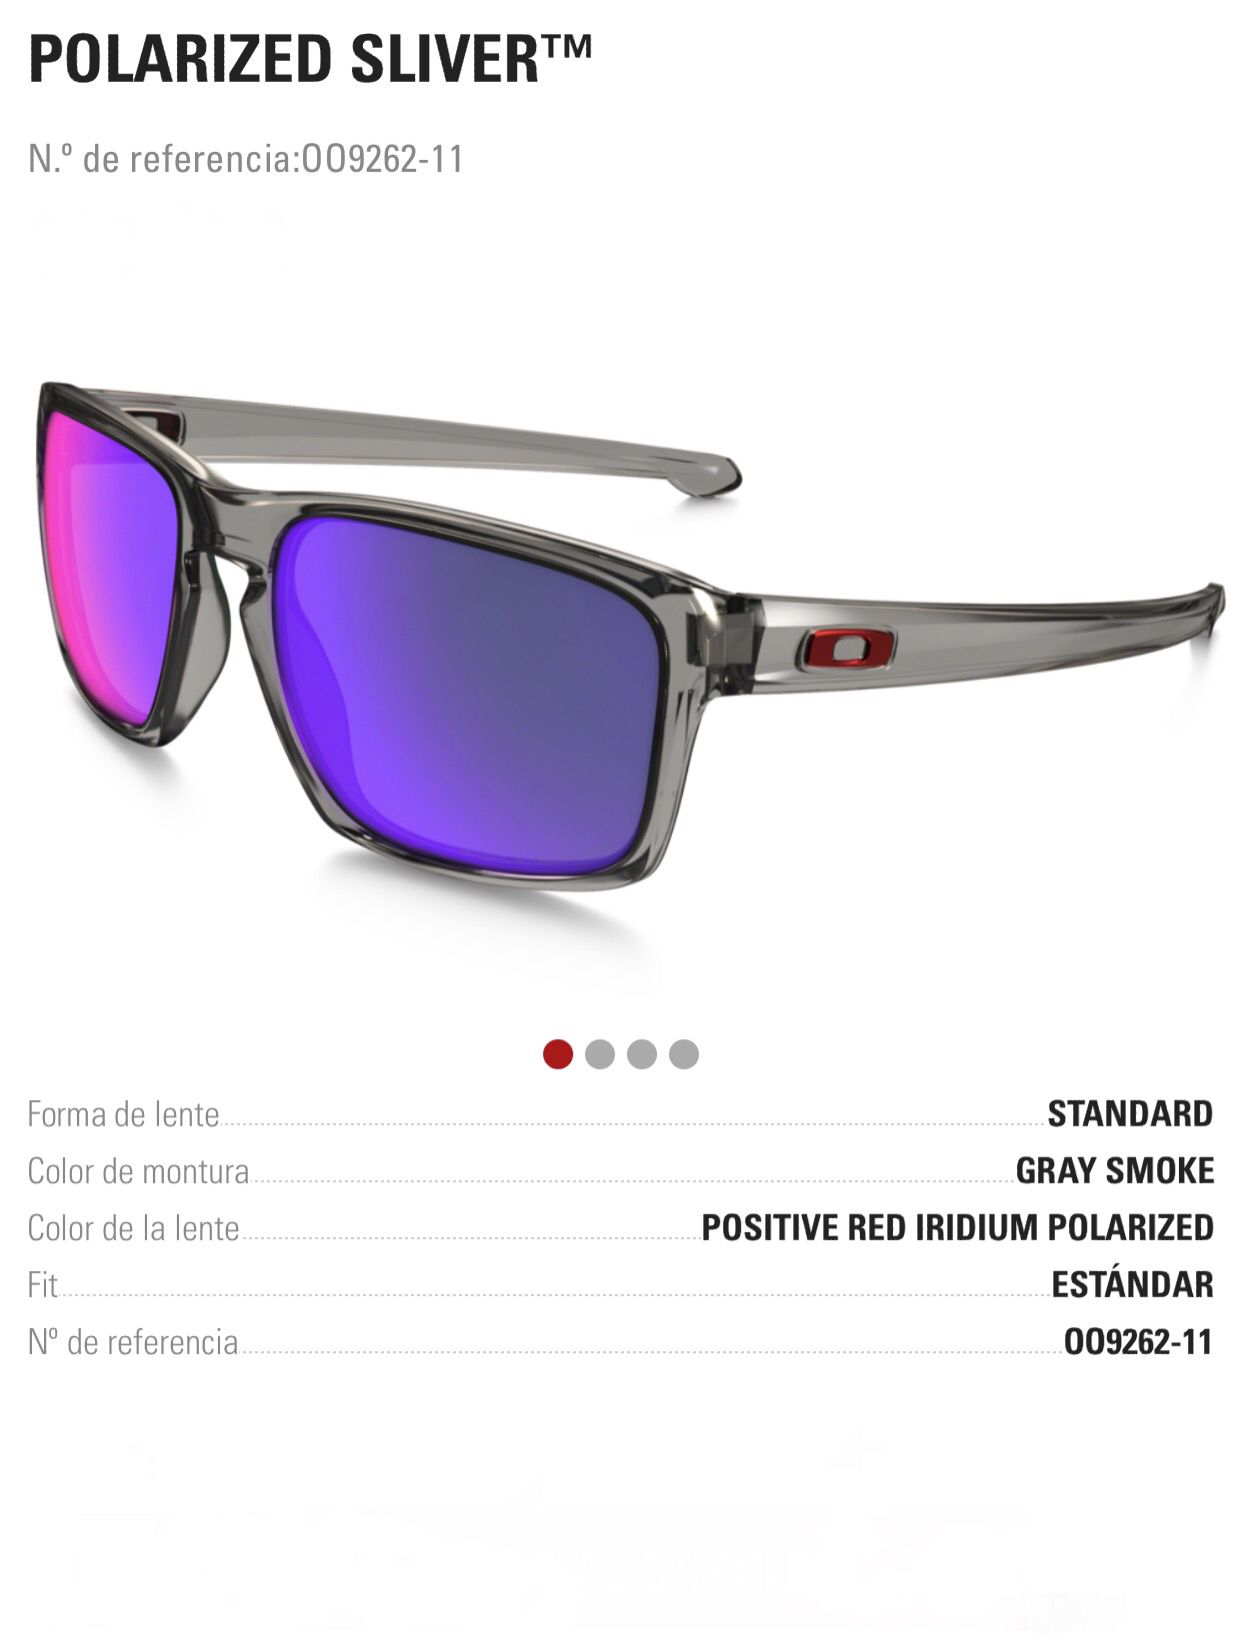 70851aaaaa917 Oakley Sliver Positive Red Iridium Polarized. Find this Pin and more on Gafas  de sol ...